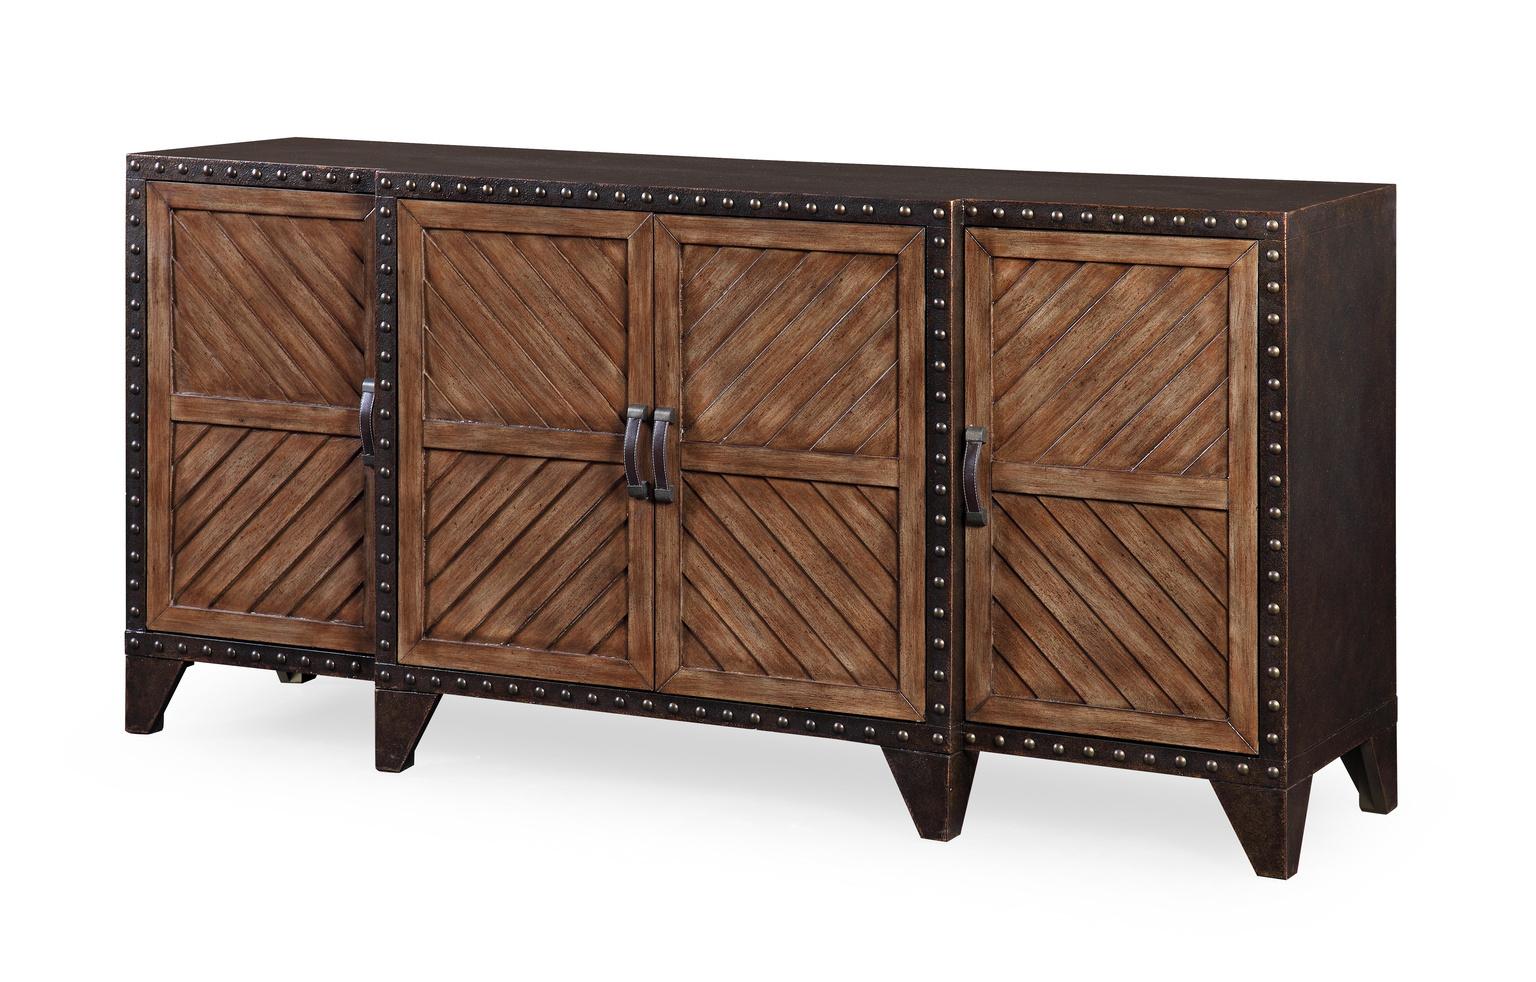 Popular Black Oak Wood And Wrought Iron Sideboards Throughout Sideboards, Cabinets, Shelving (View 9 of 20)